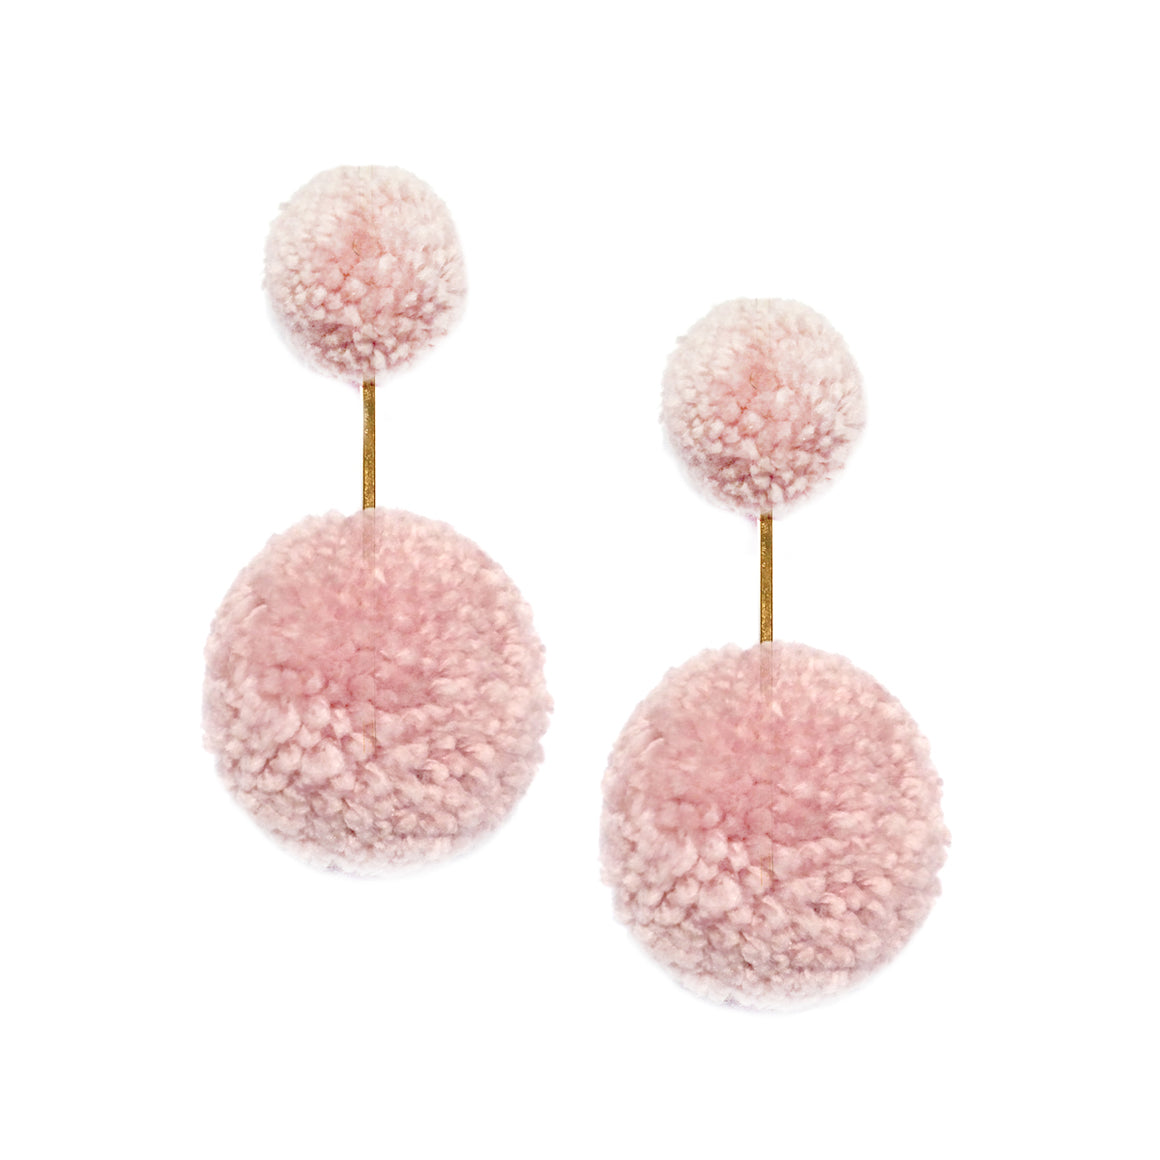 ROSY CHEEKS YARN DOUBLE POM POM EARRINGS, Earrings, Tuleste, Tuleste